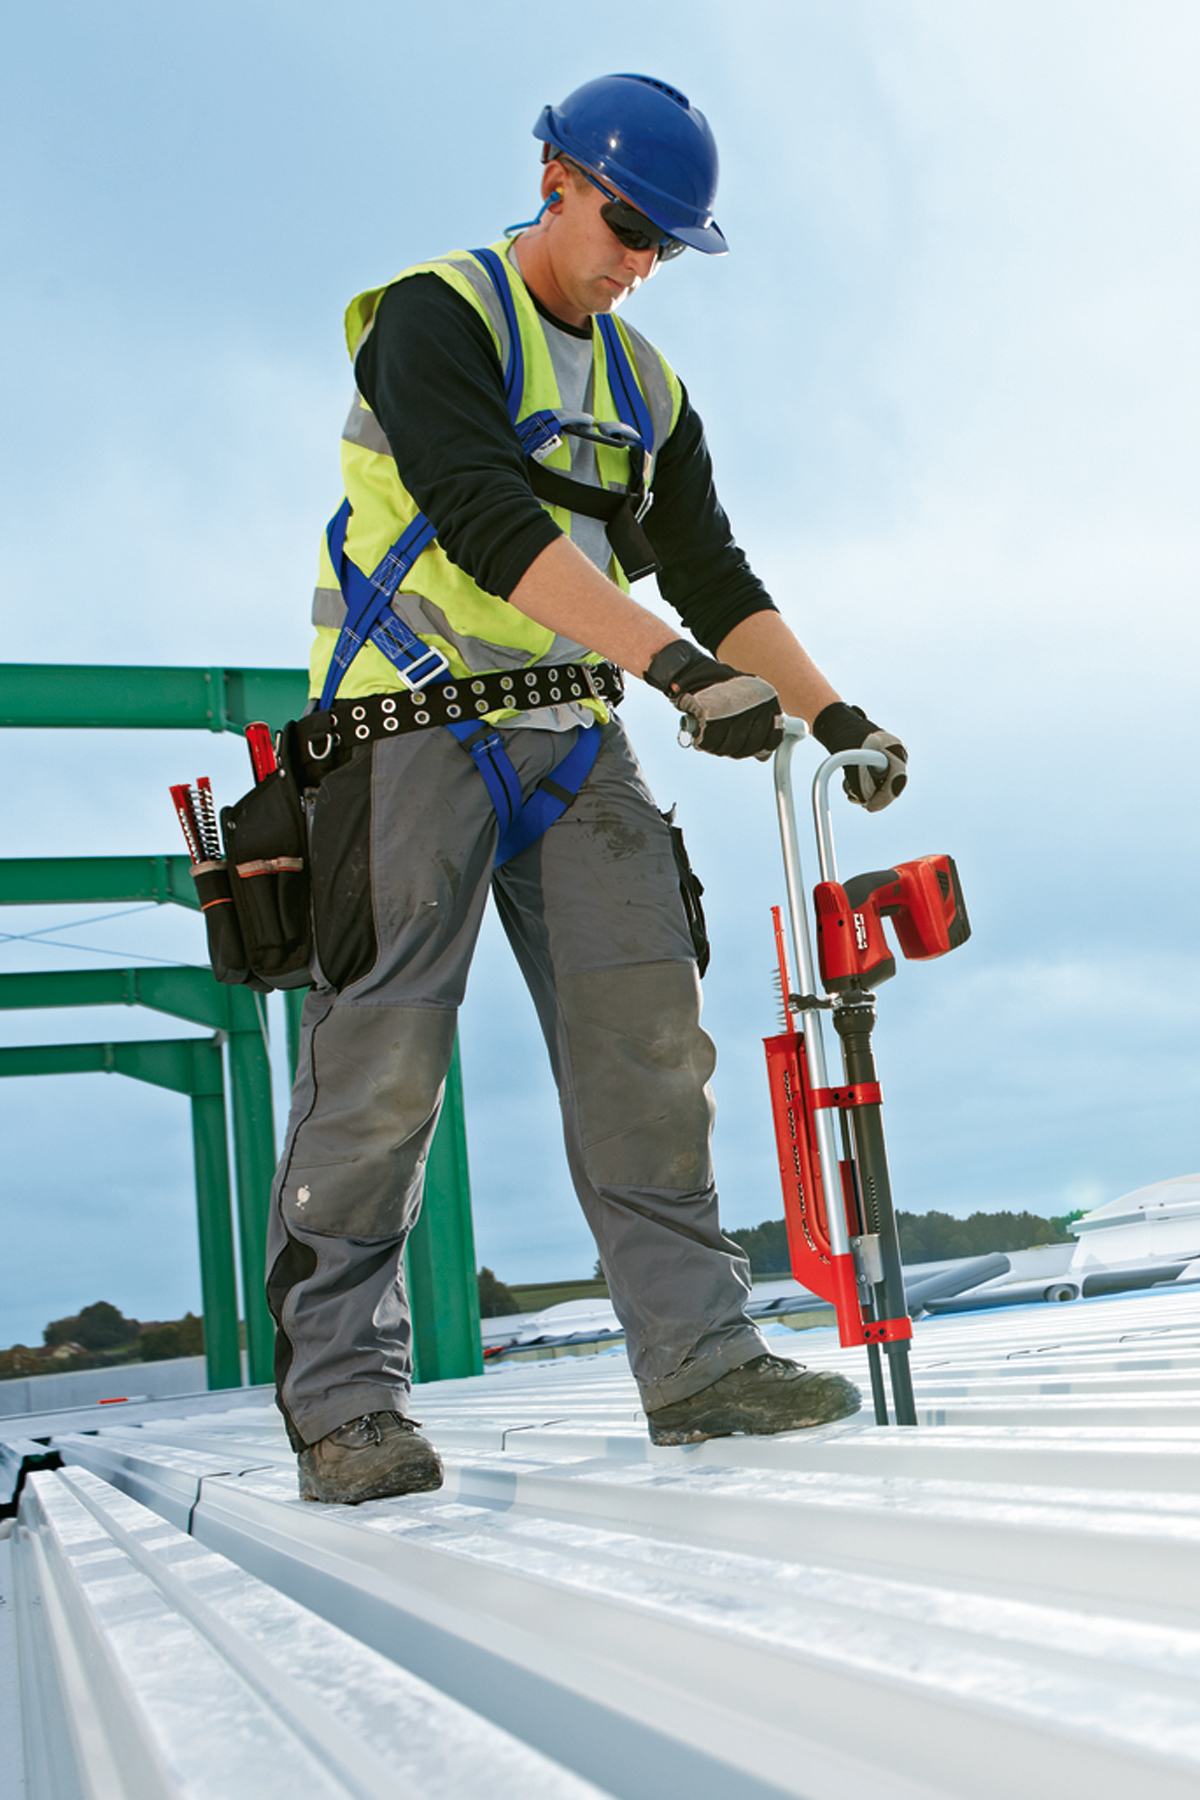 Stand Up Decking Tool System From Hilti Concrete